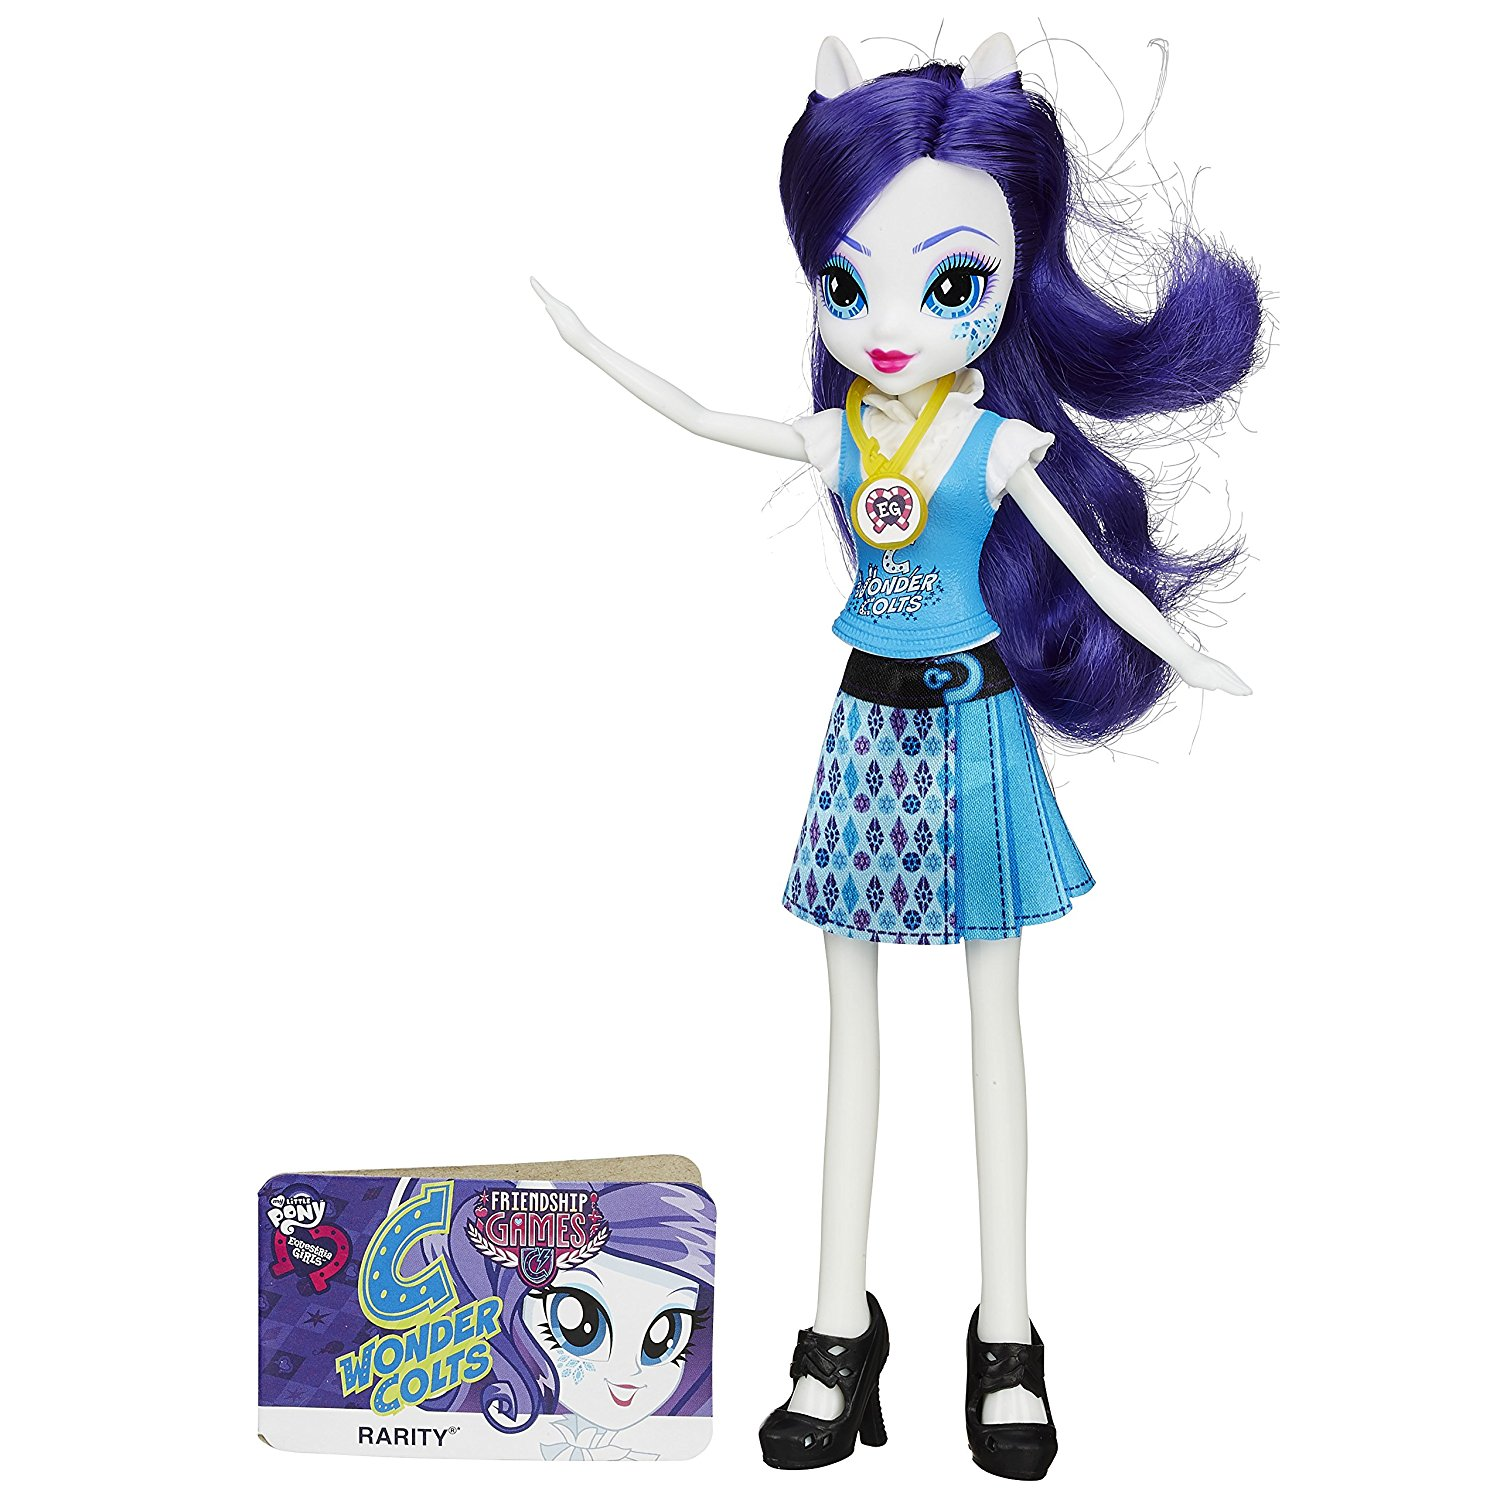 Equestria Girls Rarity Friendship Games Doll, Equestria Girls dolls feature long, colorful hair! By My Little Pony Ship from US